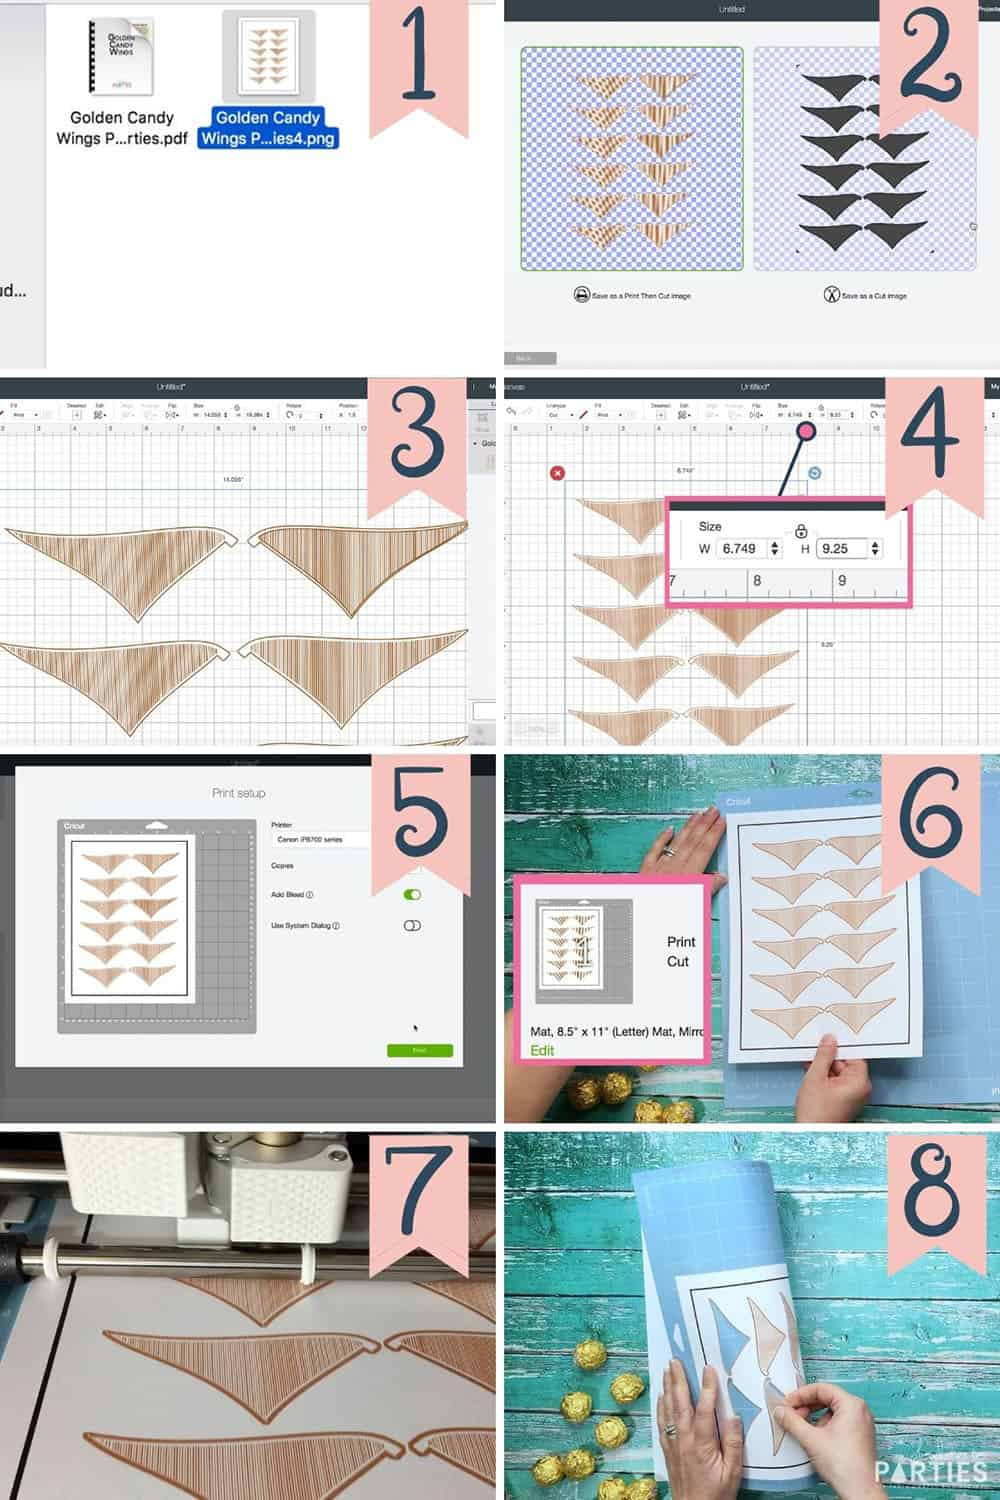 Steps 1-8 to upload, print, and cut the golden snitch wings with a Cricut cutting machine.